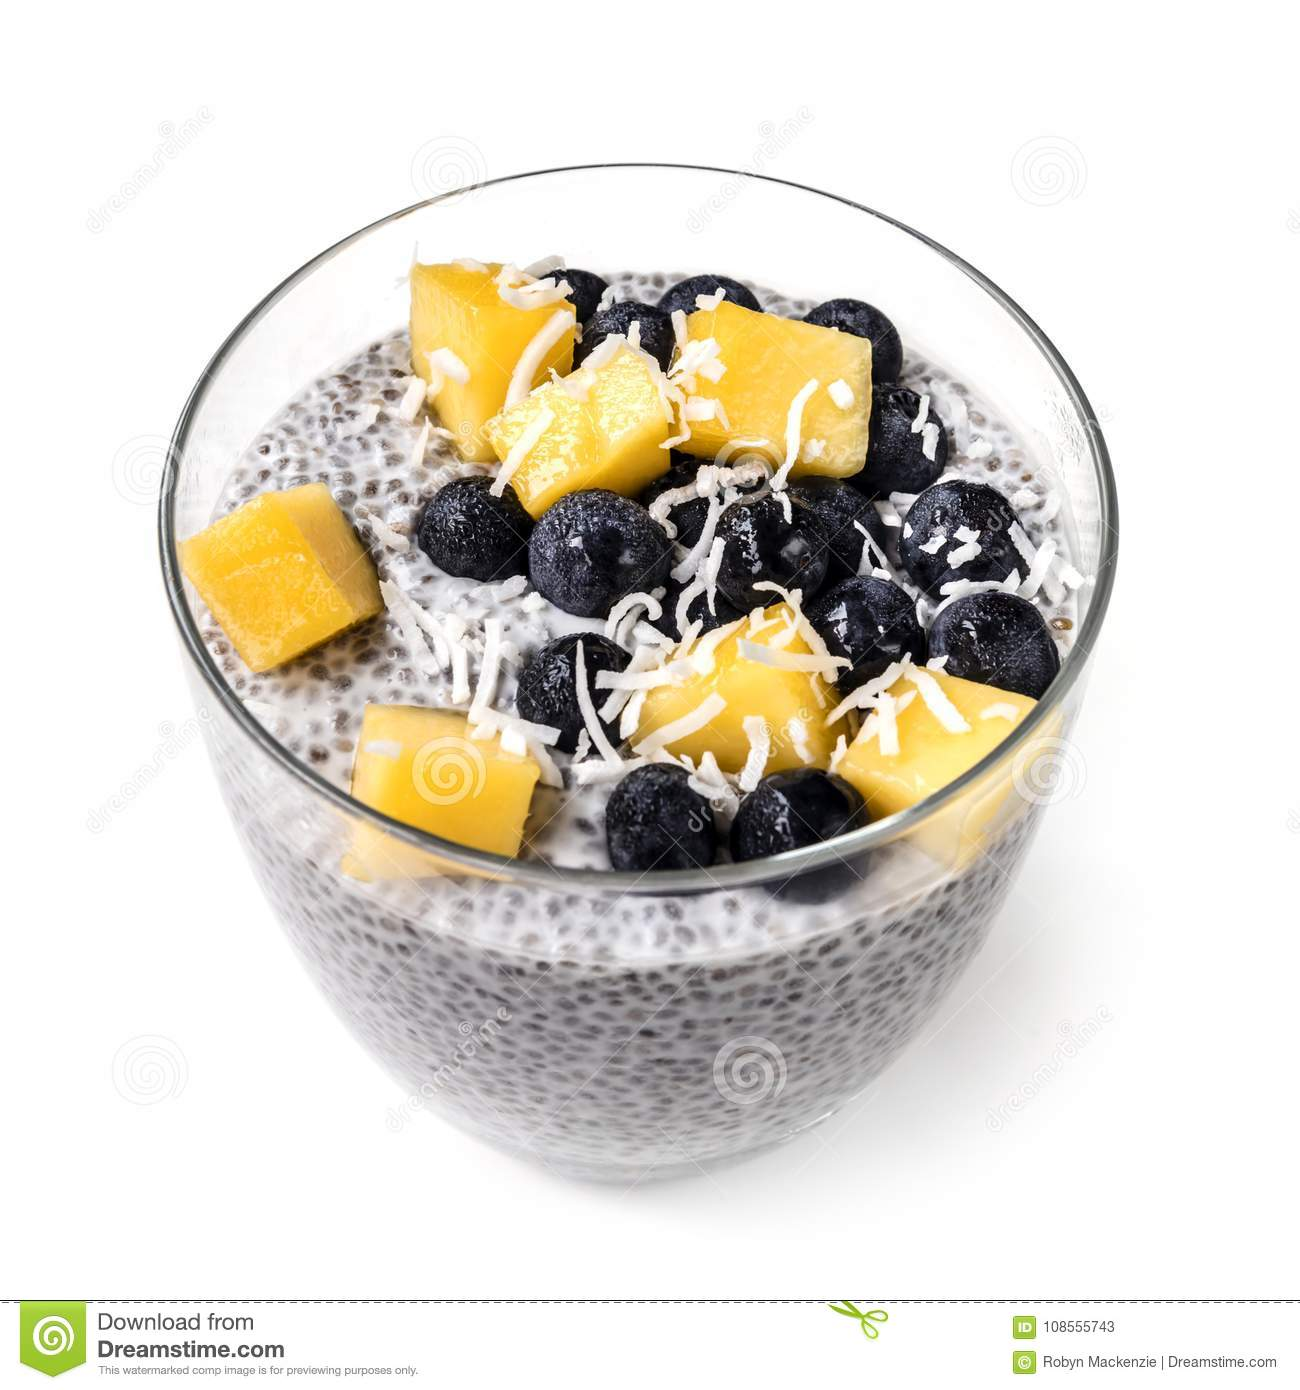 Chia Pudding Isolated in Glass with Blueberries Mango and Shredd